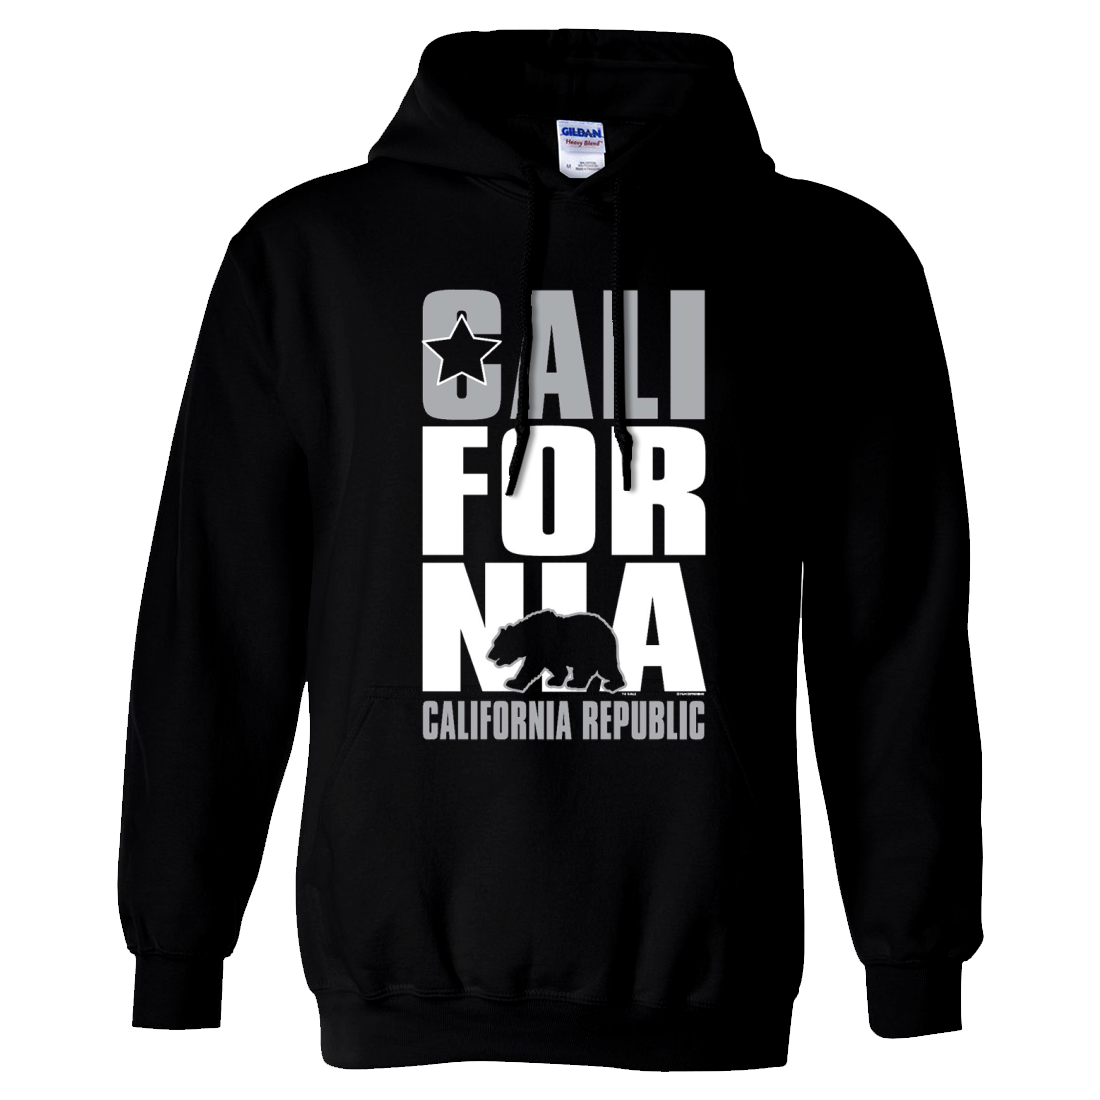 California Republic Raiders Style Sweatshirt Hoodie